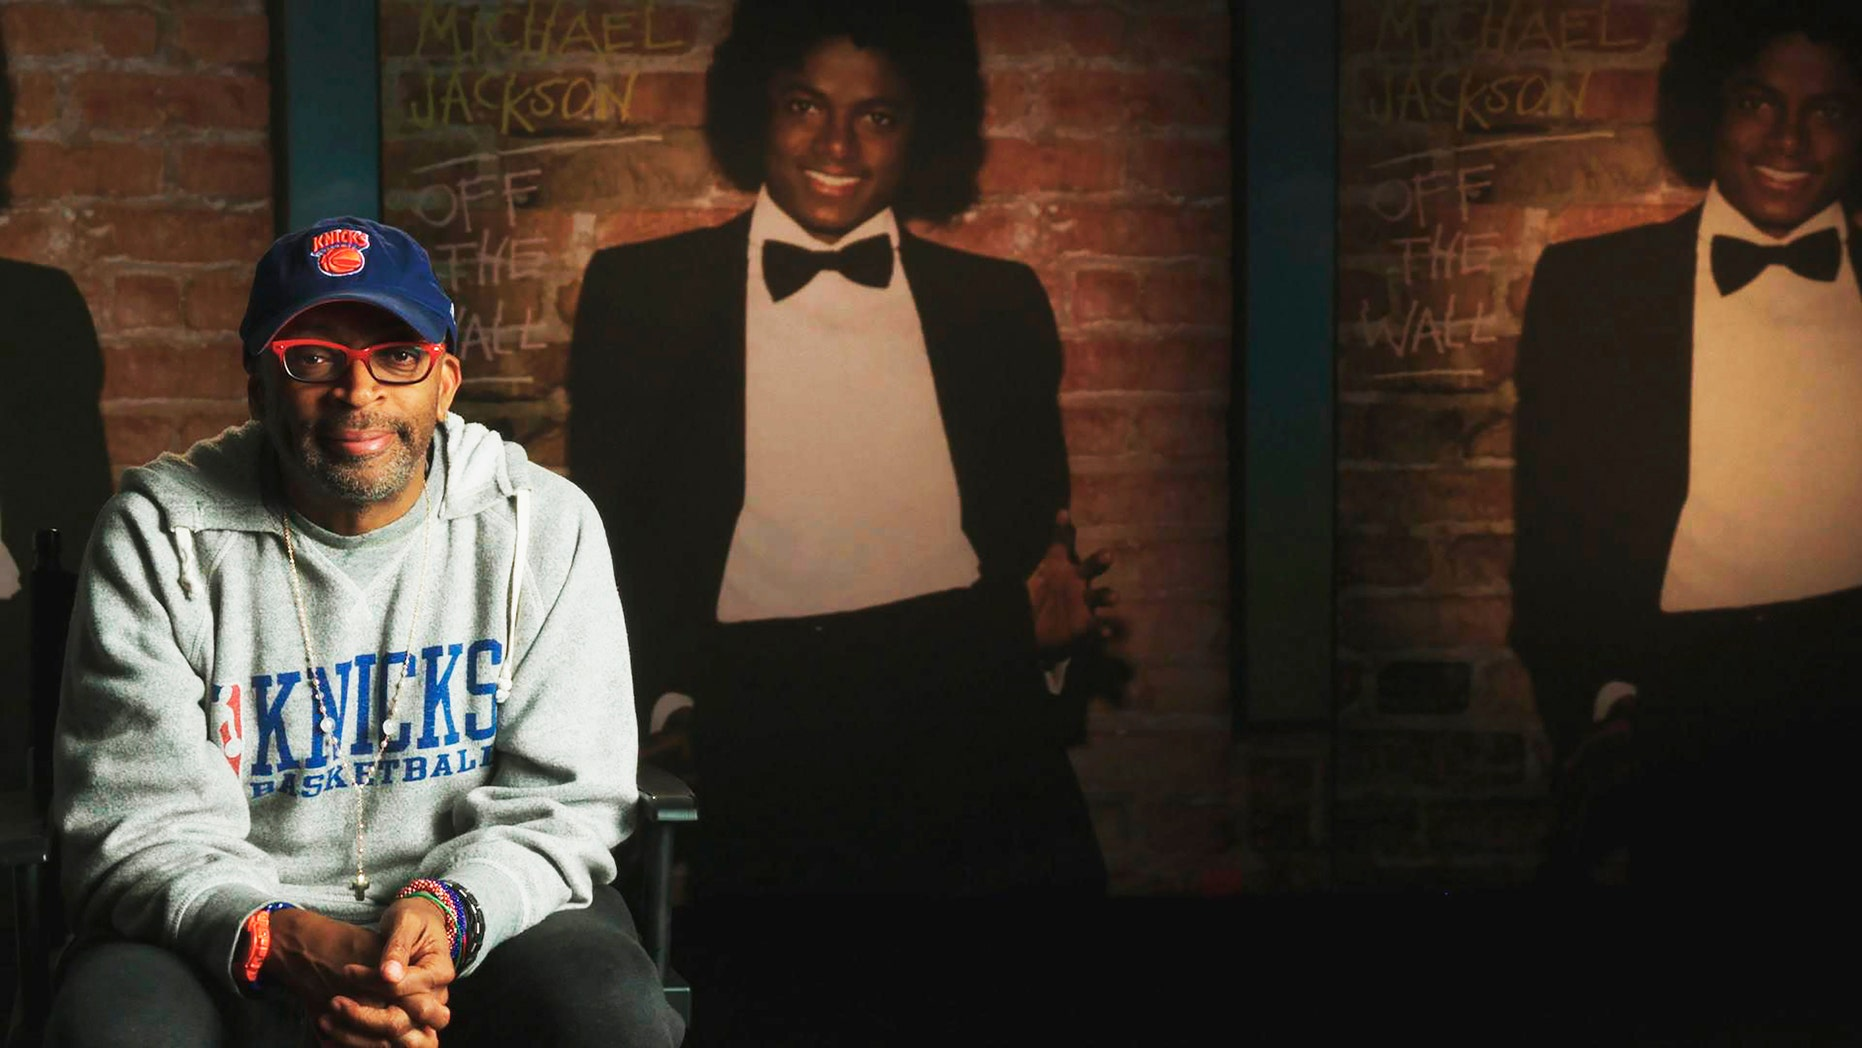 "Director Spike Lee whose documentary film, ""Michael Jackson's Journey from Motown to Off the Wall,"" is included among the documentaries premiering at the 2016 Sundance Film Festival in Park City, Utah."